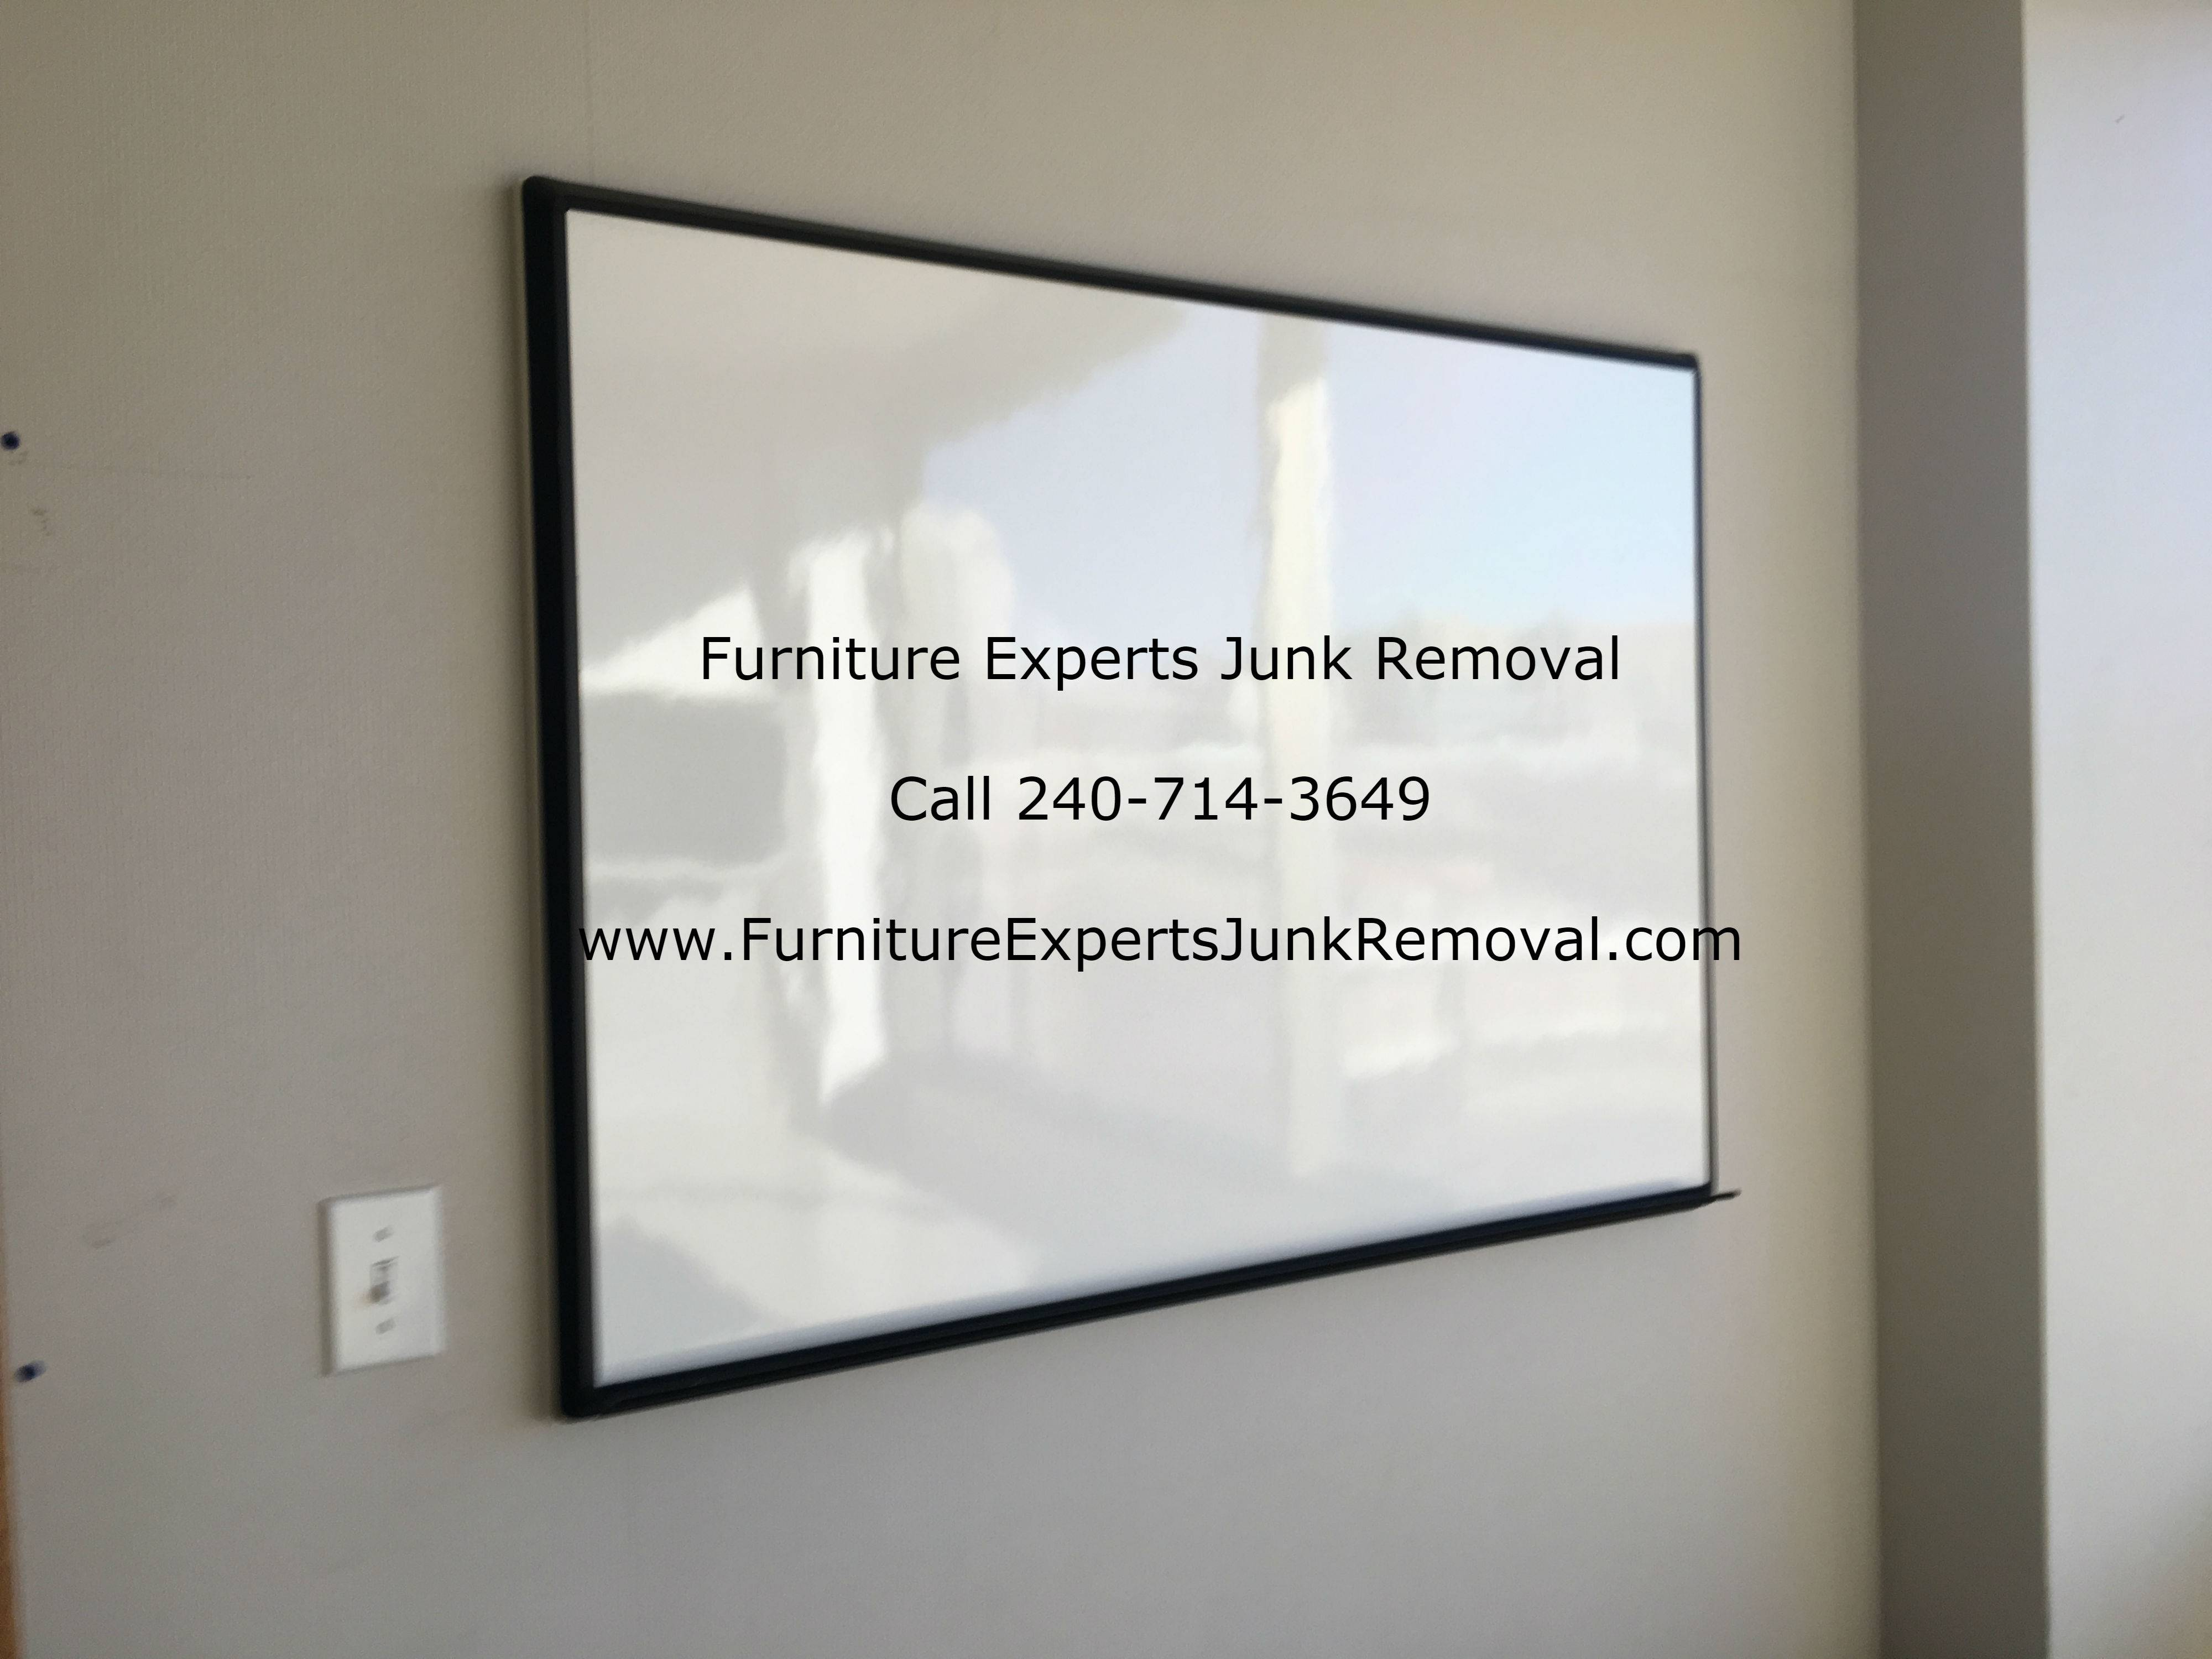 Junk office furniture removal in Bethesda MD